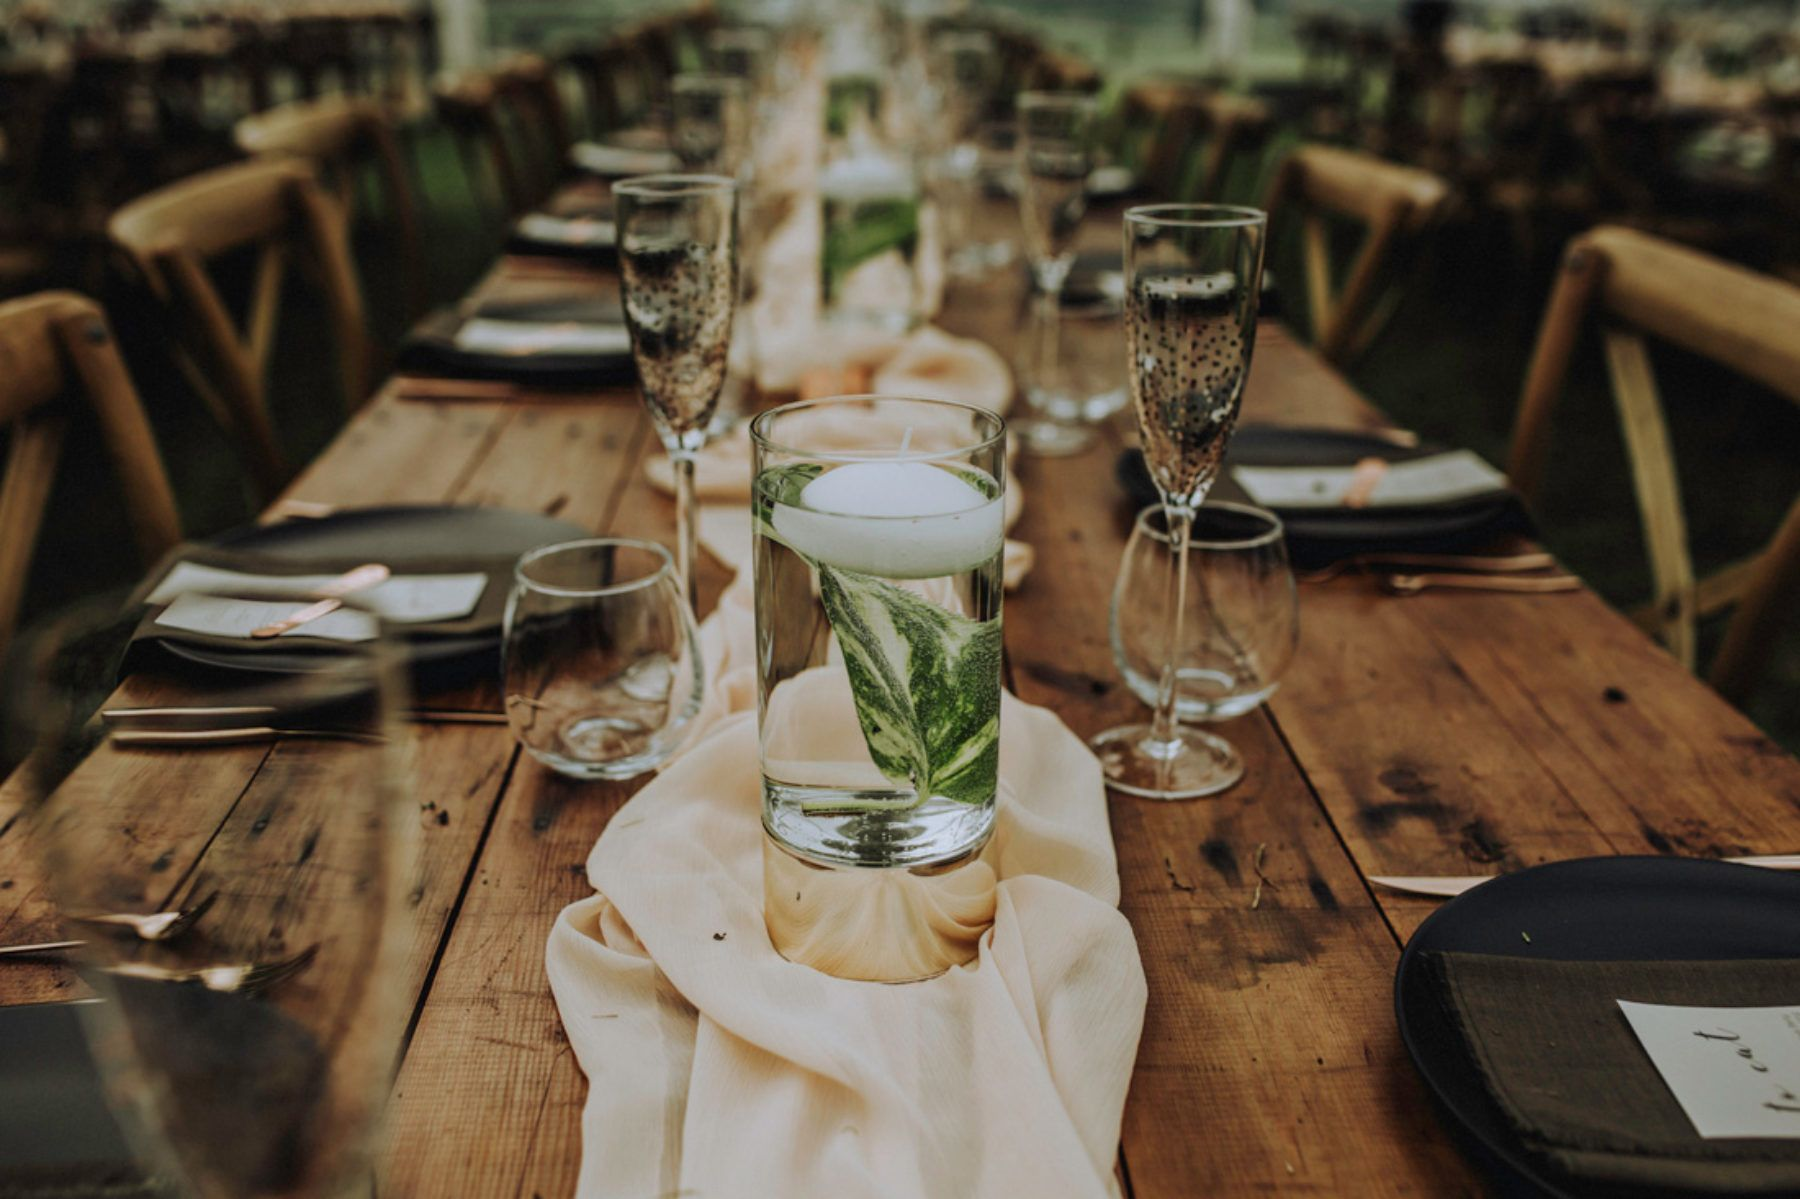 Copper cutlery and matte black dinner plates hired from the phillip lauras new zealand diy wedding was a wonderful celebration of over a decade of love and friendship from these high school sweethearts junglespirit Gallery